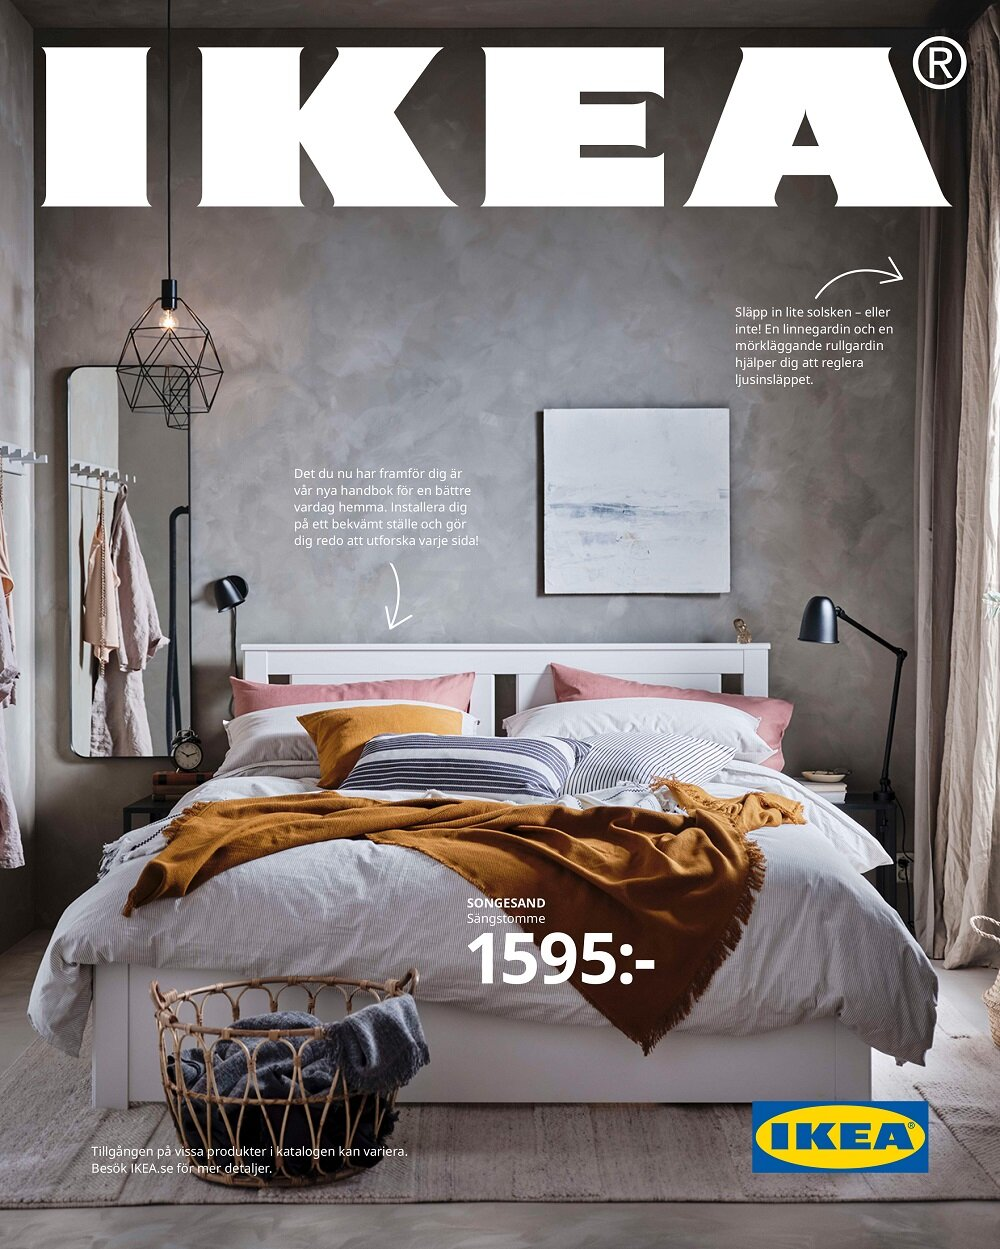 IKEA Catalog 2021 | A Handbook For A Better Everyday Life at Home